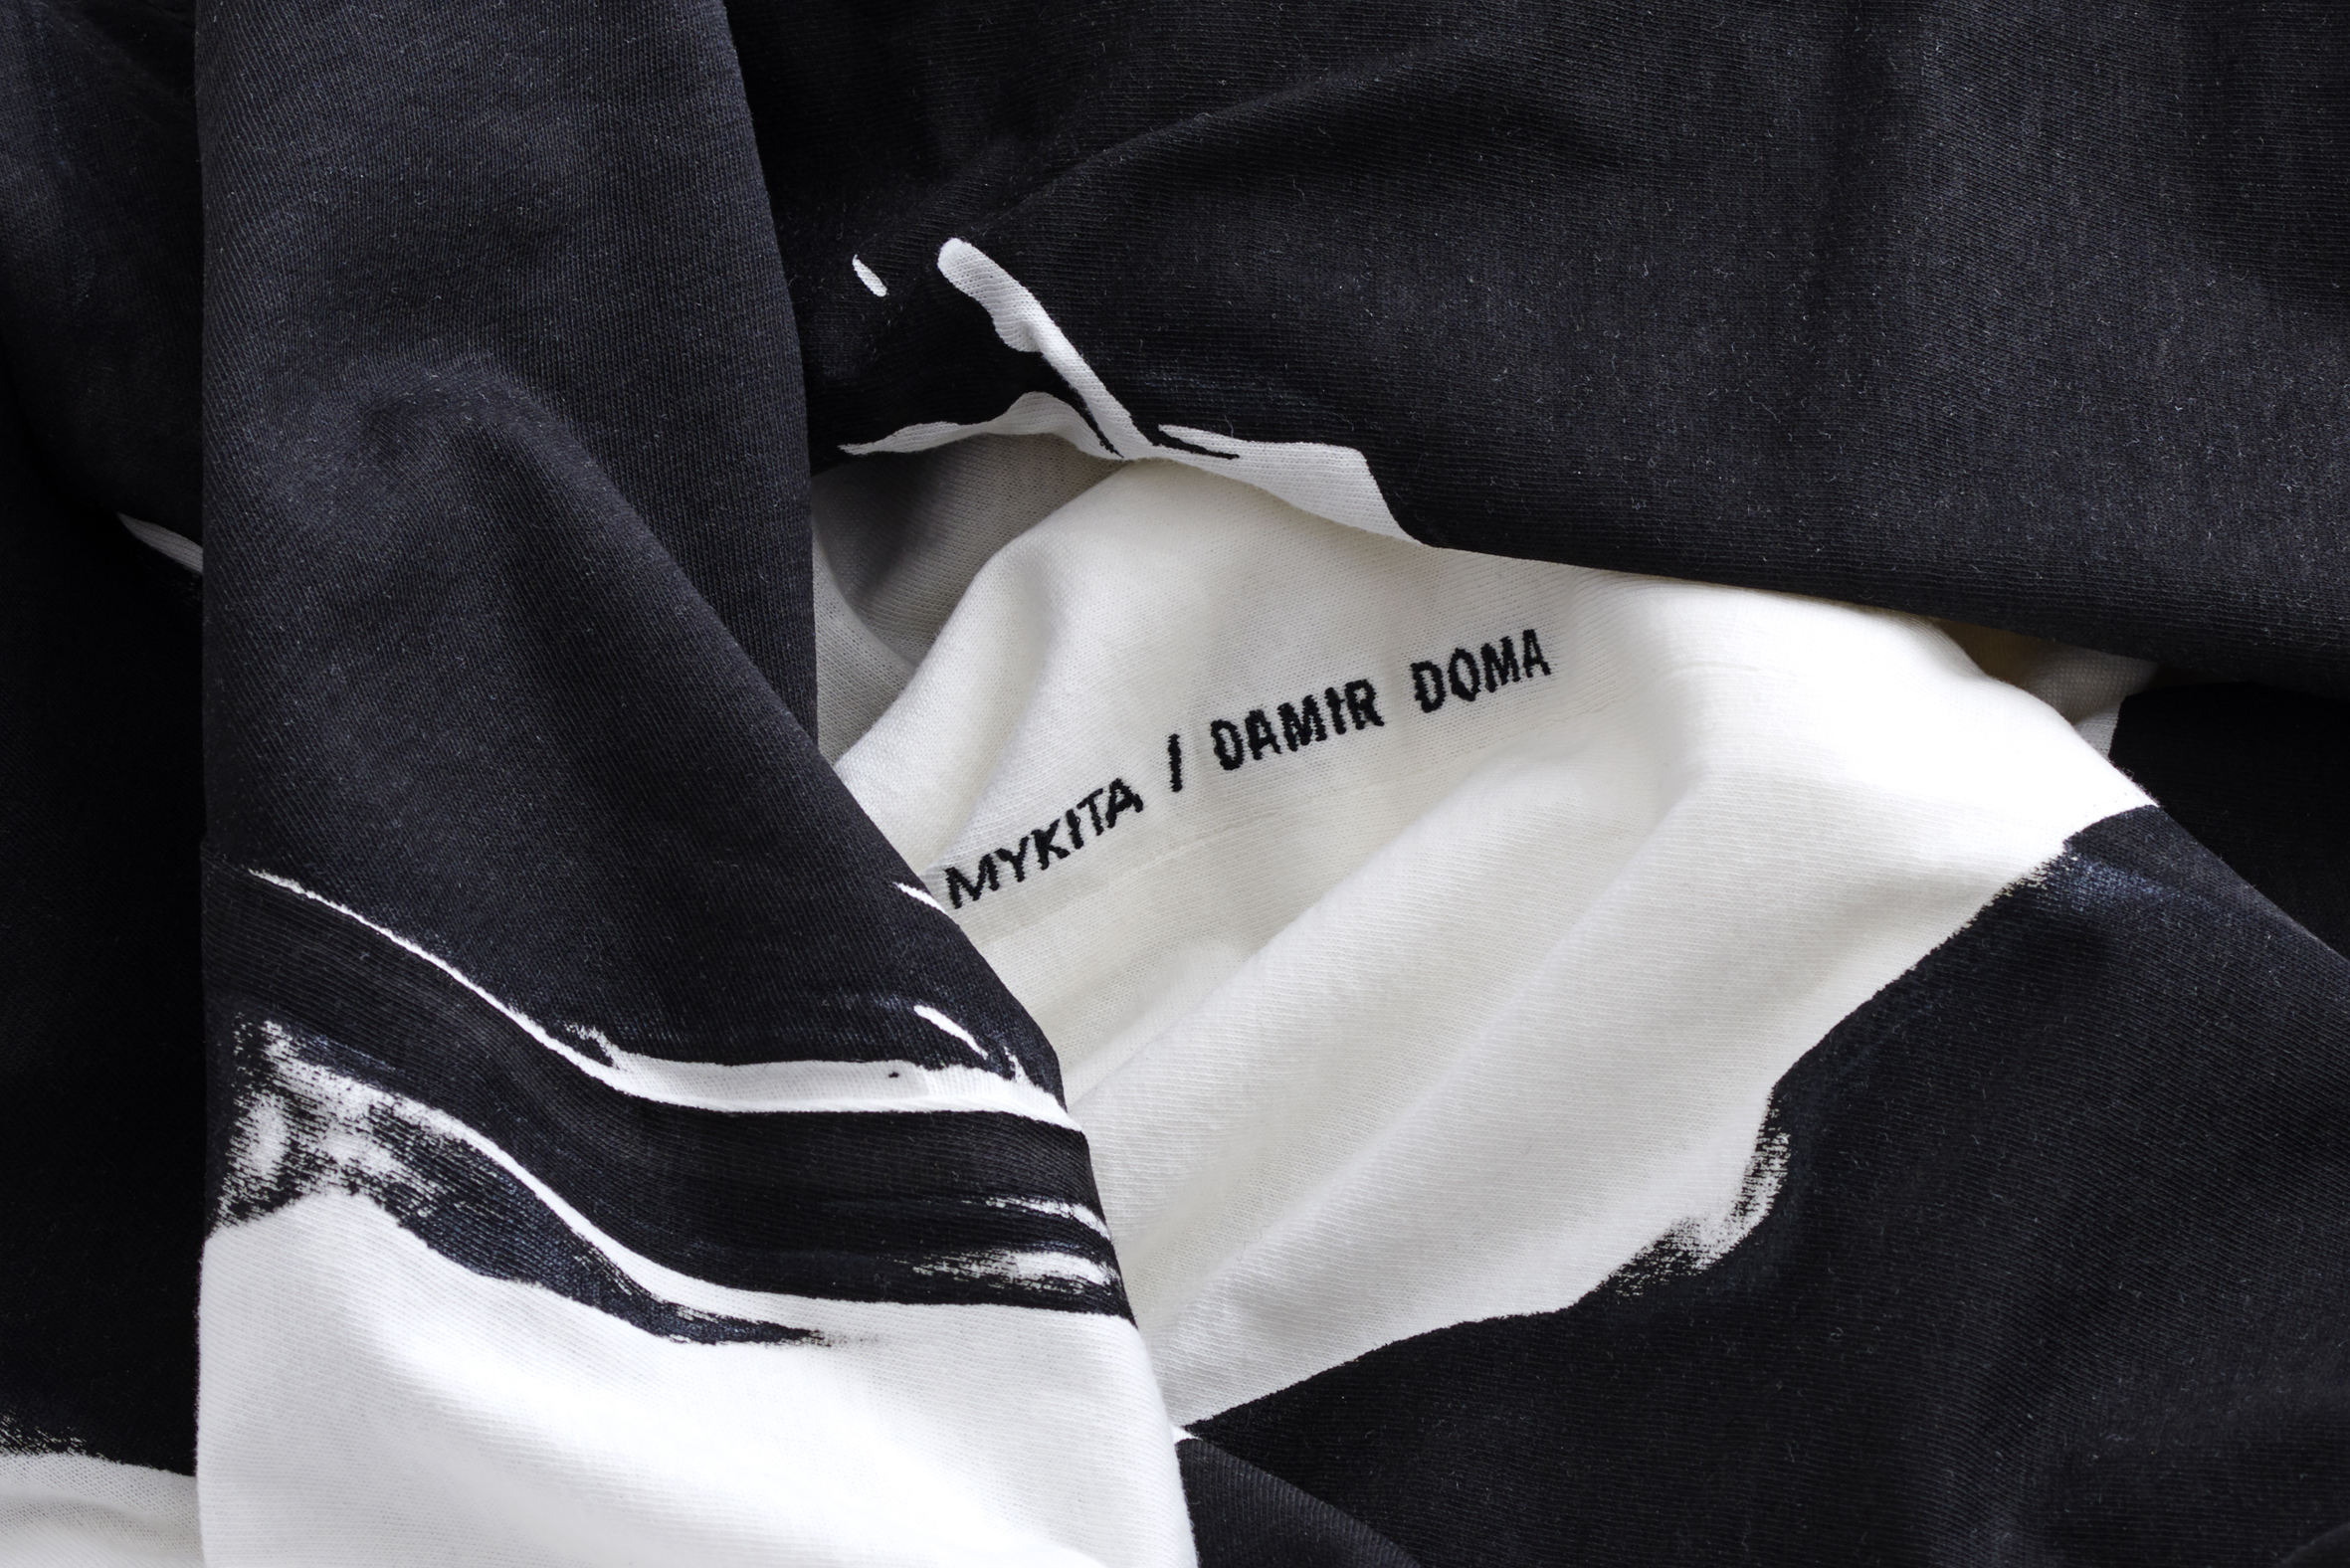 MYKITA Damir Doma Limited Edition Set Tshirt Detail